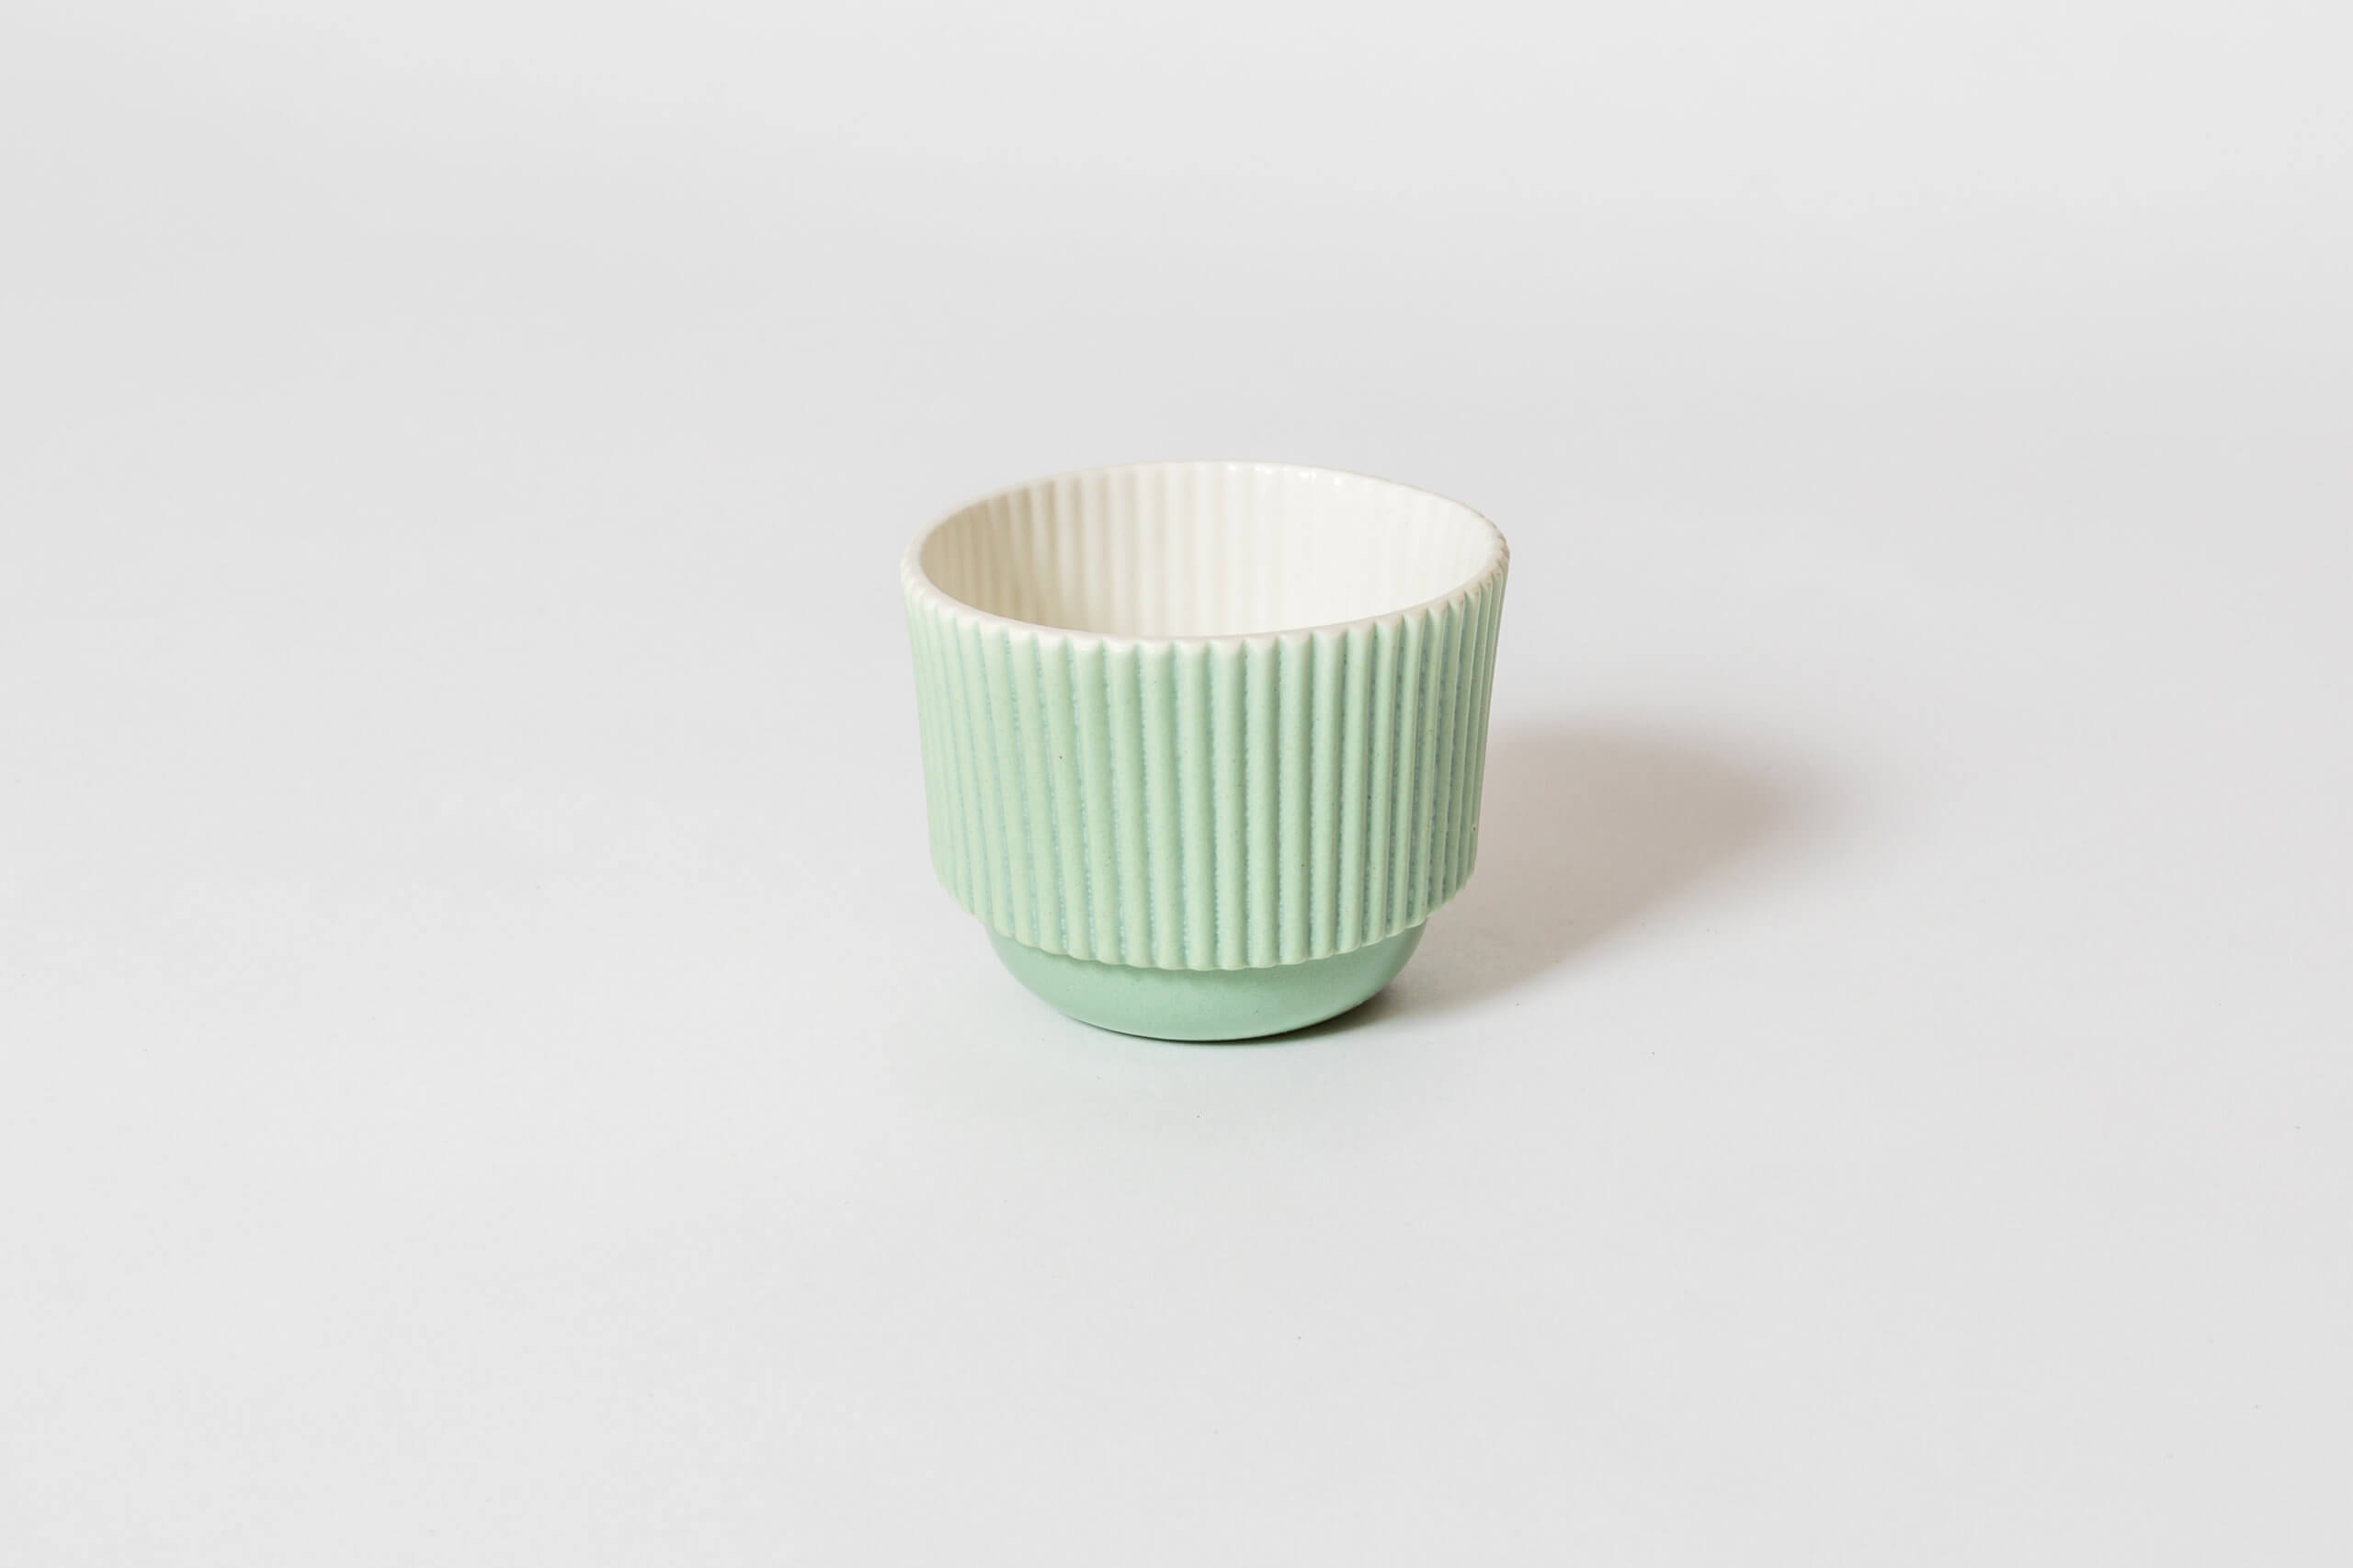 Kubek Jelly Striped/ Small/ Mint